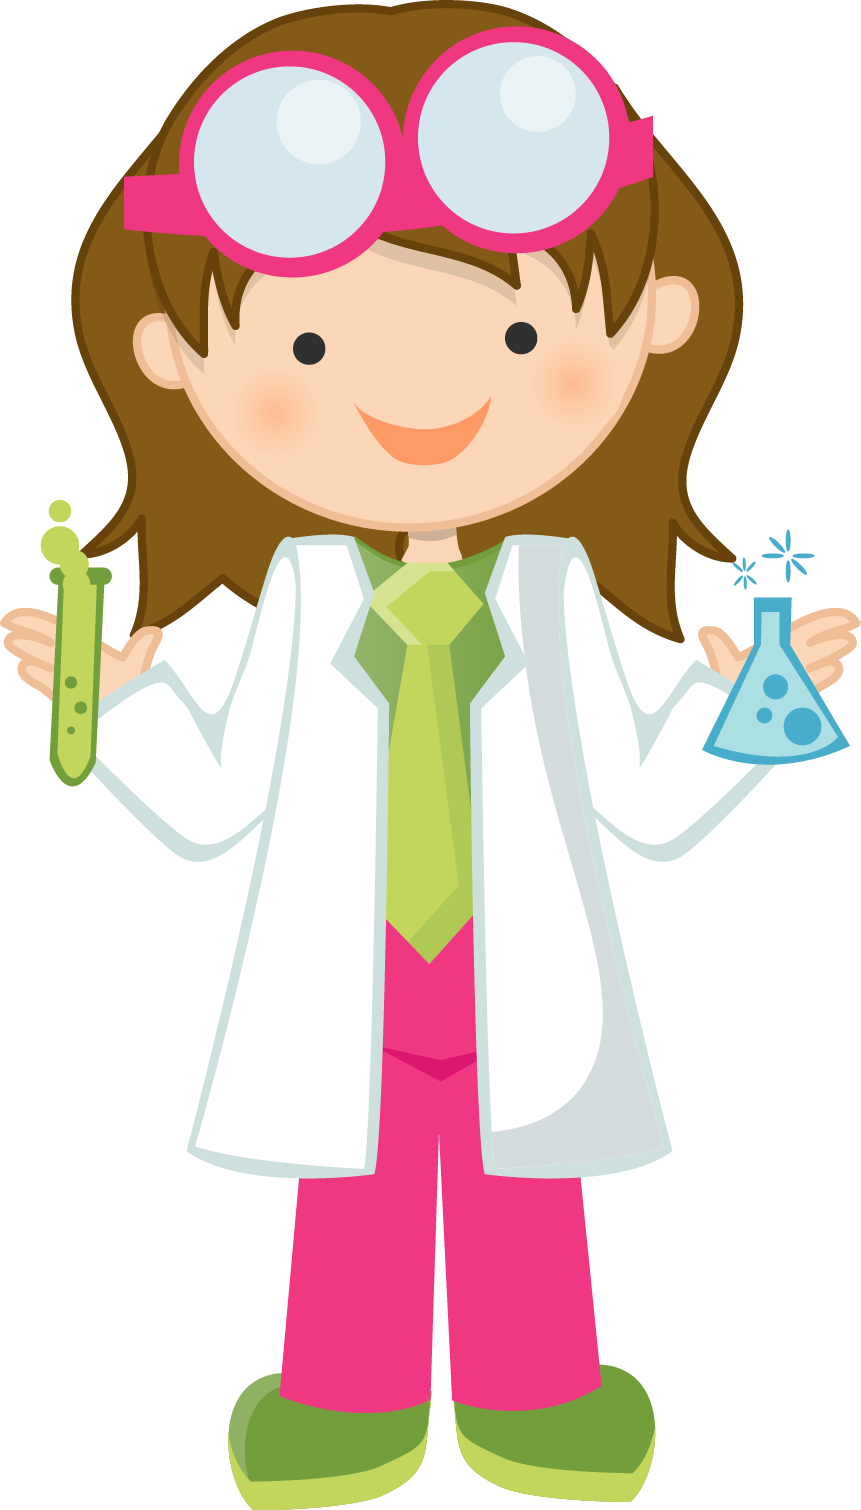 Scientist clipart friendly.